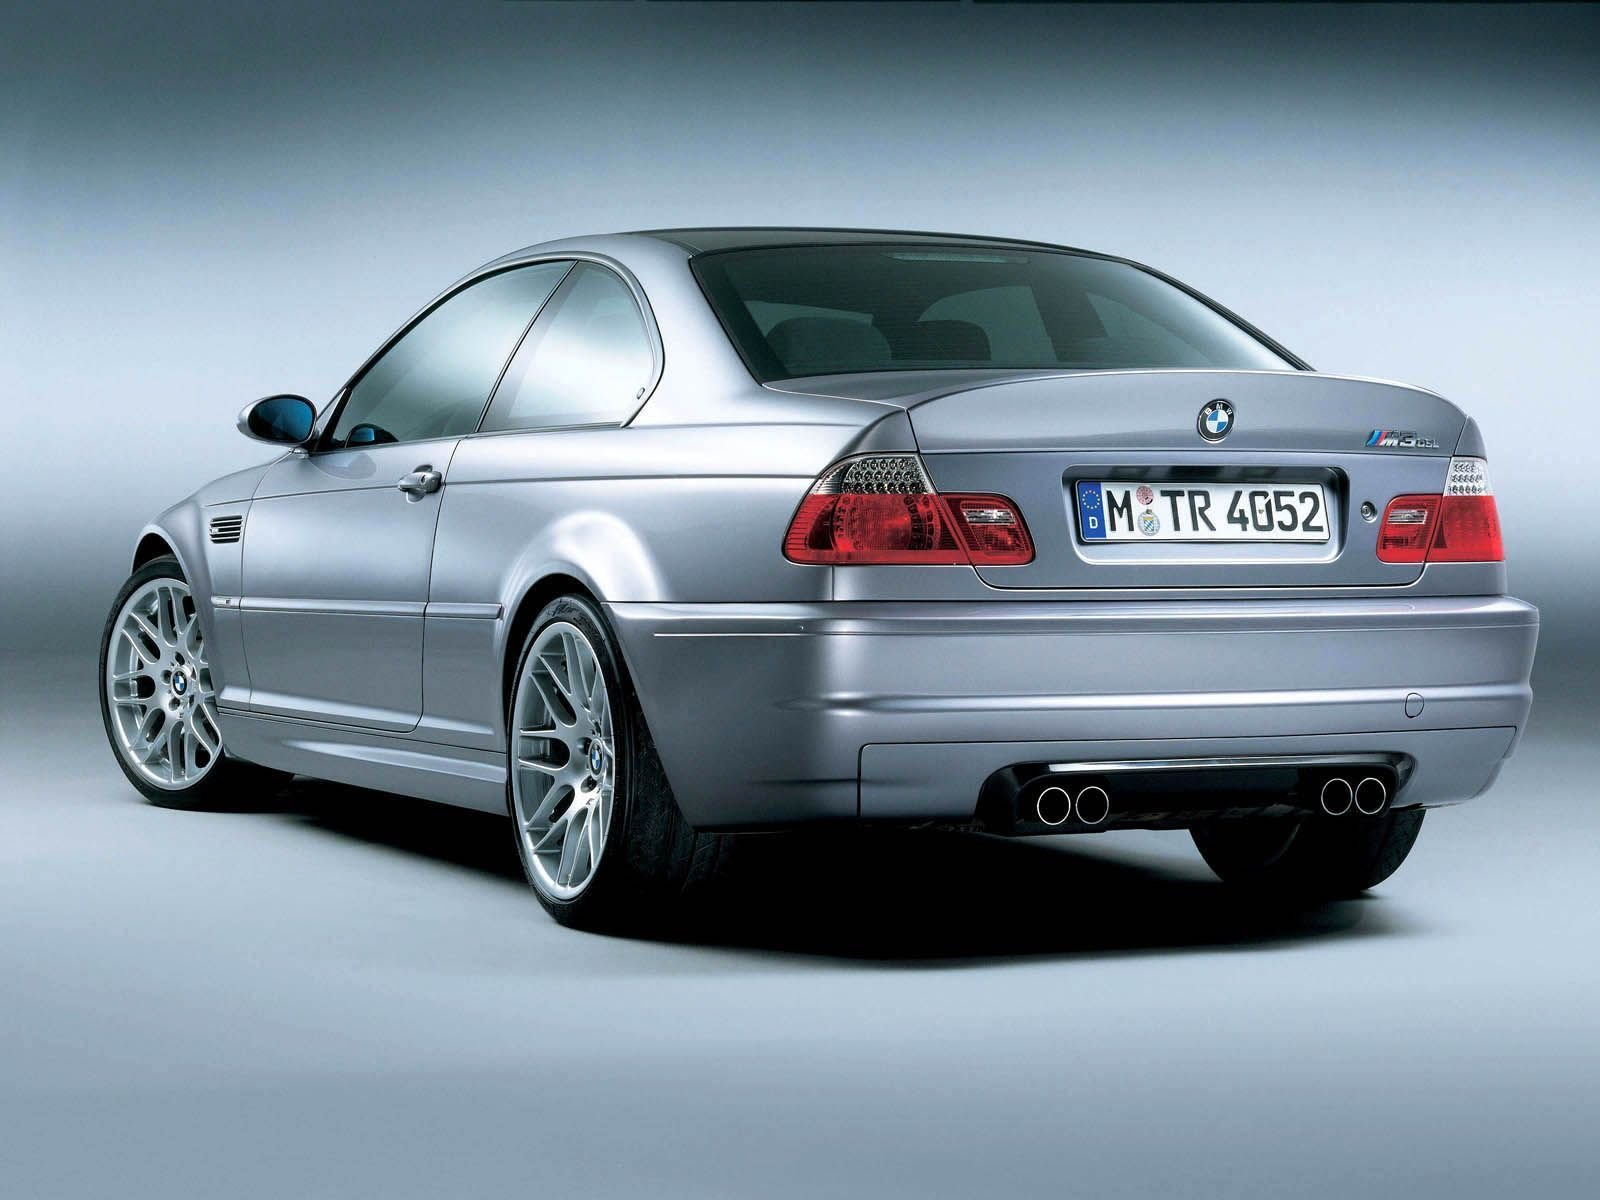 2005 bmw m3 e46 csl picture 30981 car review top speed. Black Bedroom Furniture Sets. Home Design Ideas